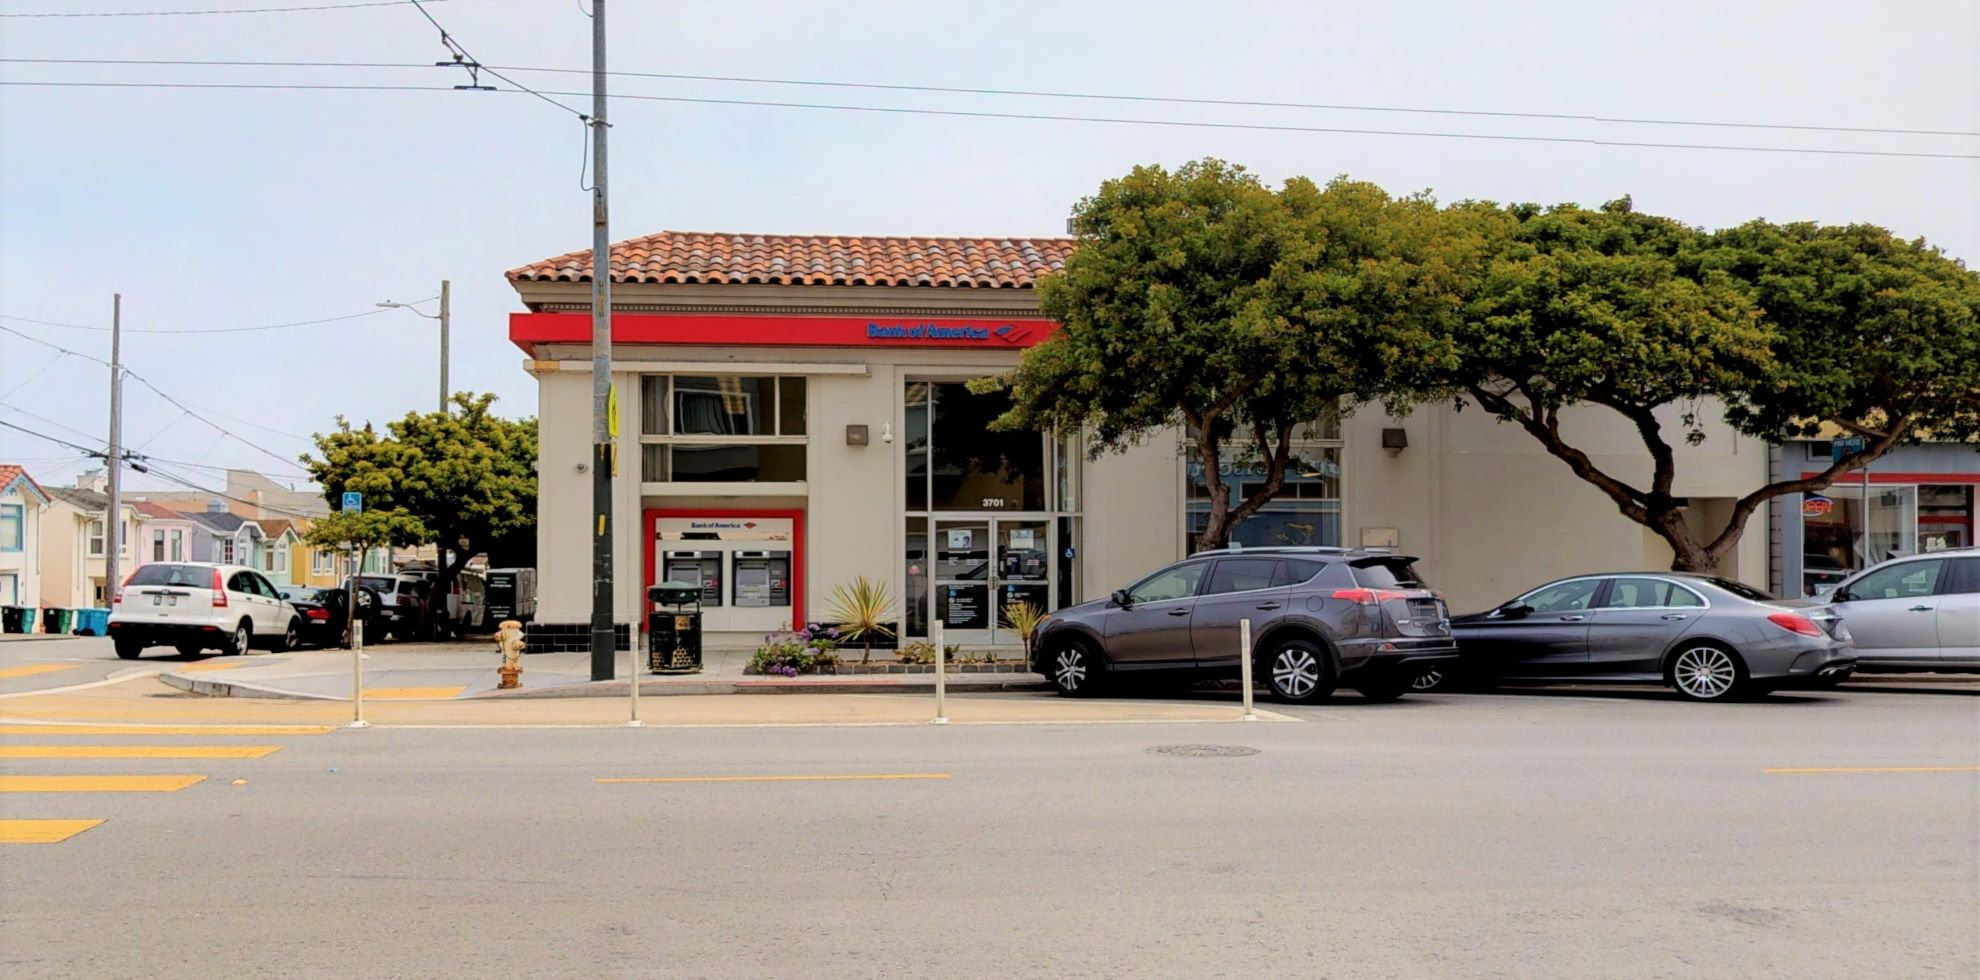 Bank of America financial center with walk-up ATM | 3701 Balboa St, San Francisco, CA 94121